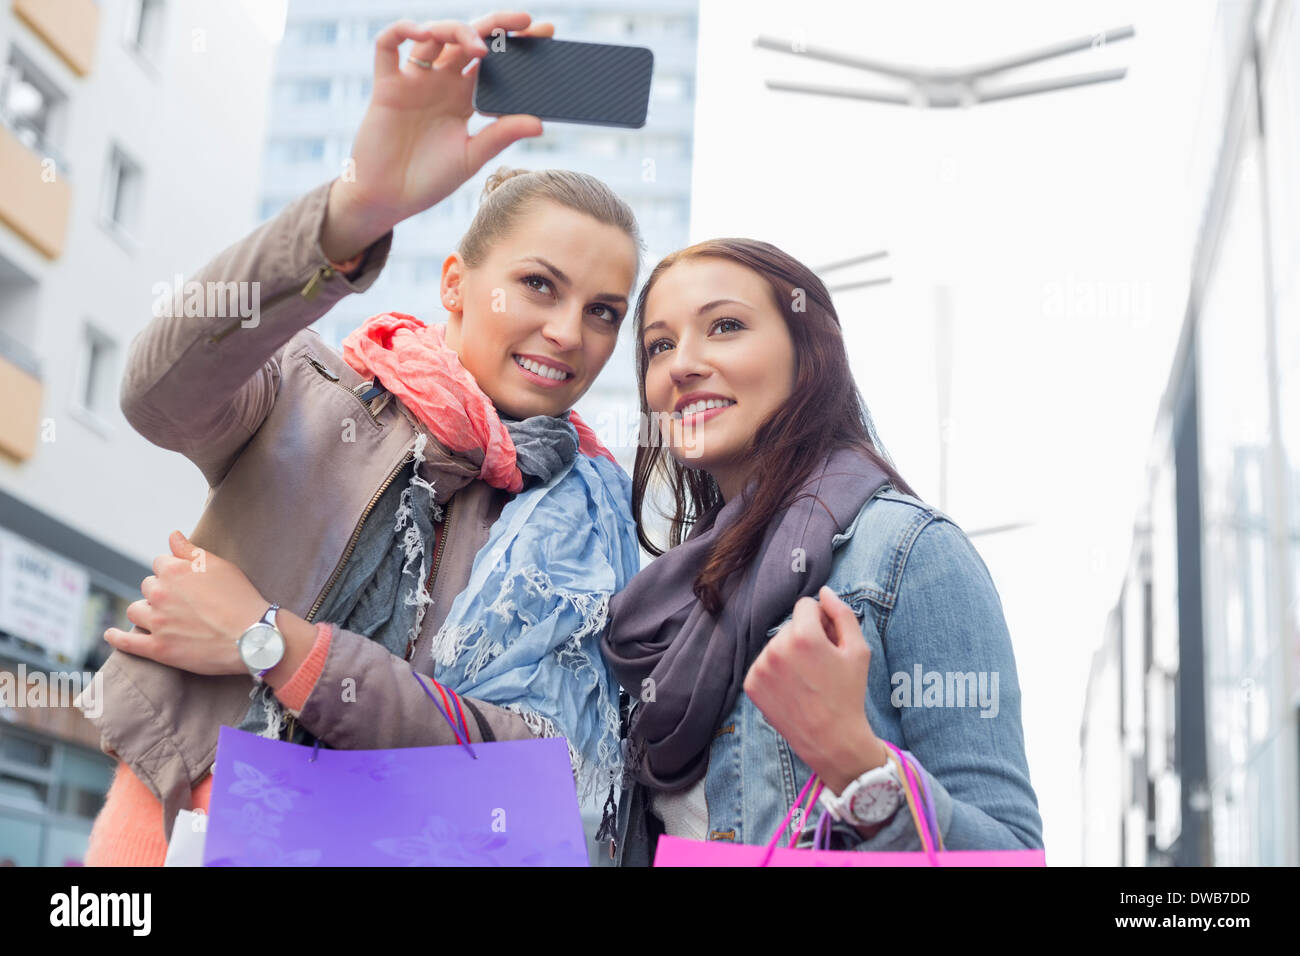 Female friends with shopping bags taking photos through mobile phone - Stock Image